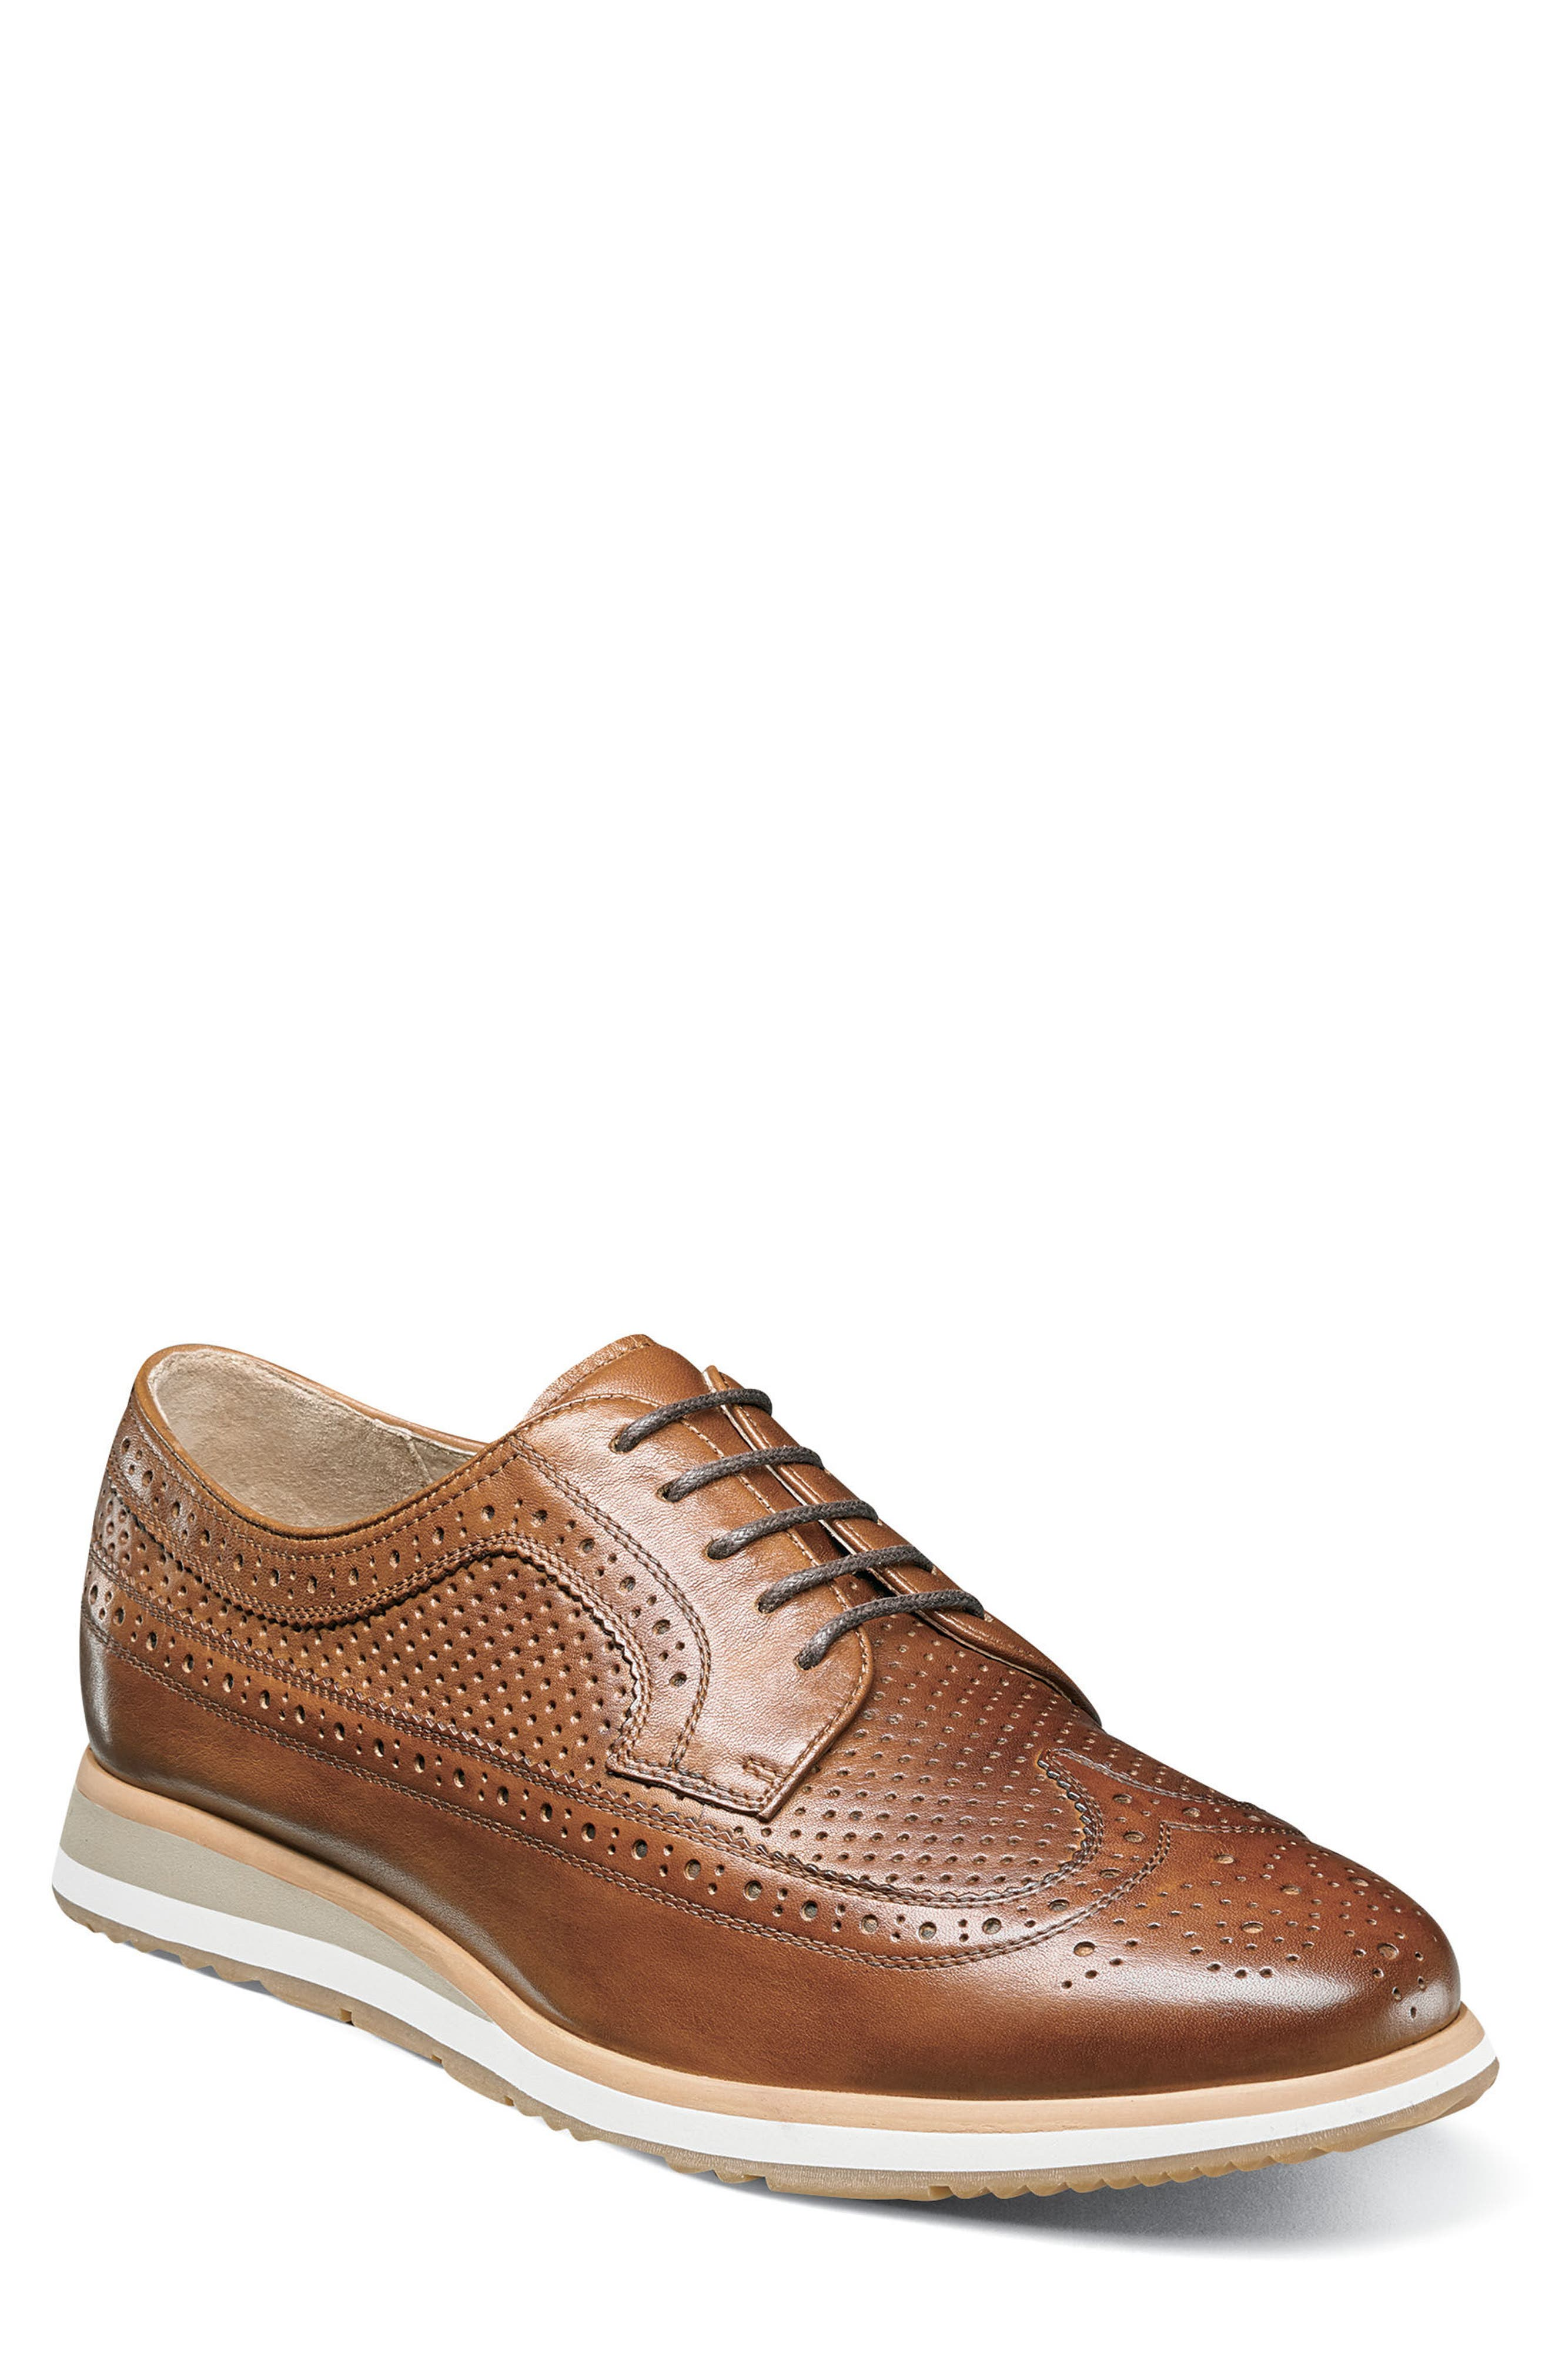 Limited Flux Perforated Wingtip Derby,                             Main thumbnail 1, color,